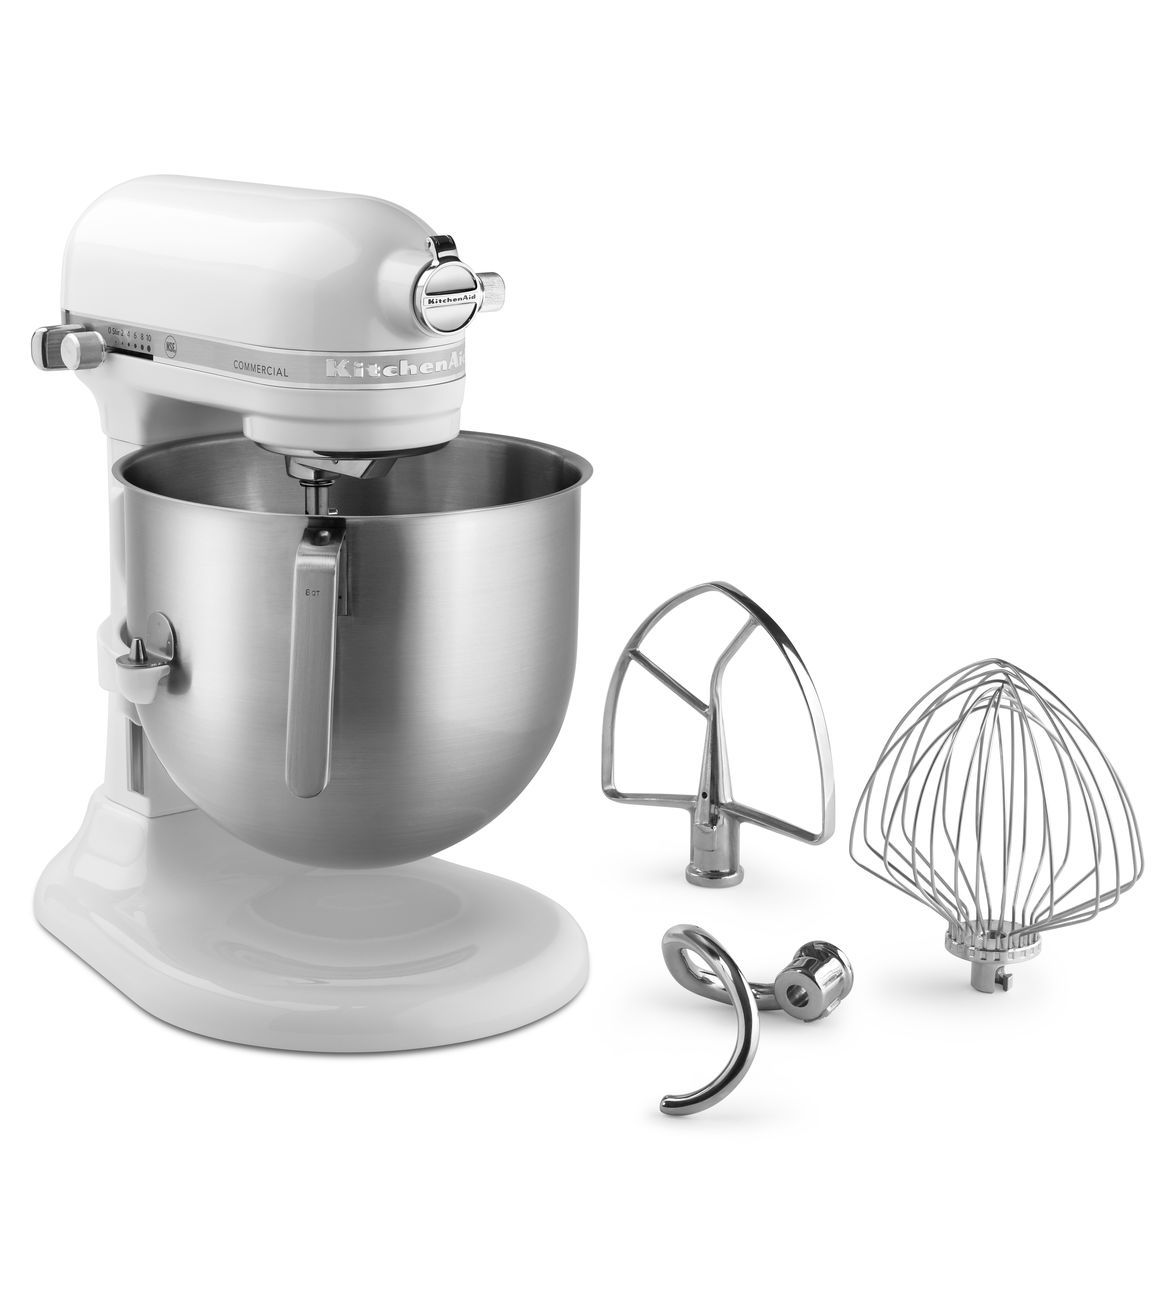 Kitchenaid White Nsf Commercial 8 Qt Bowl Lift Stand